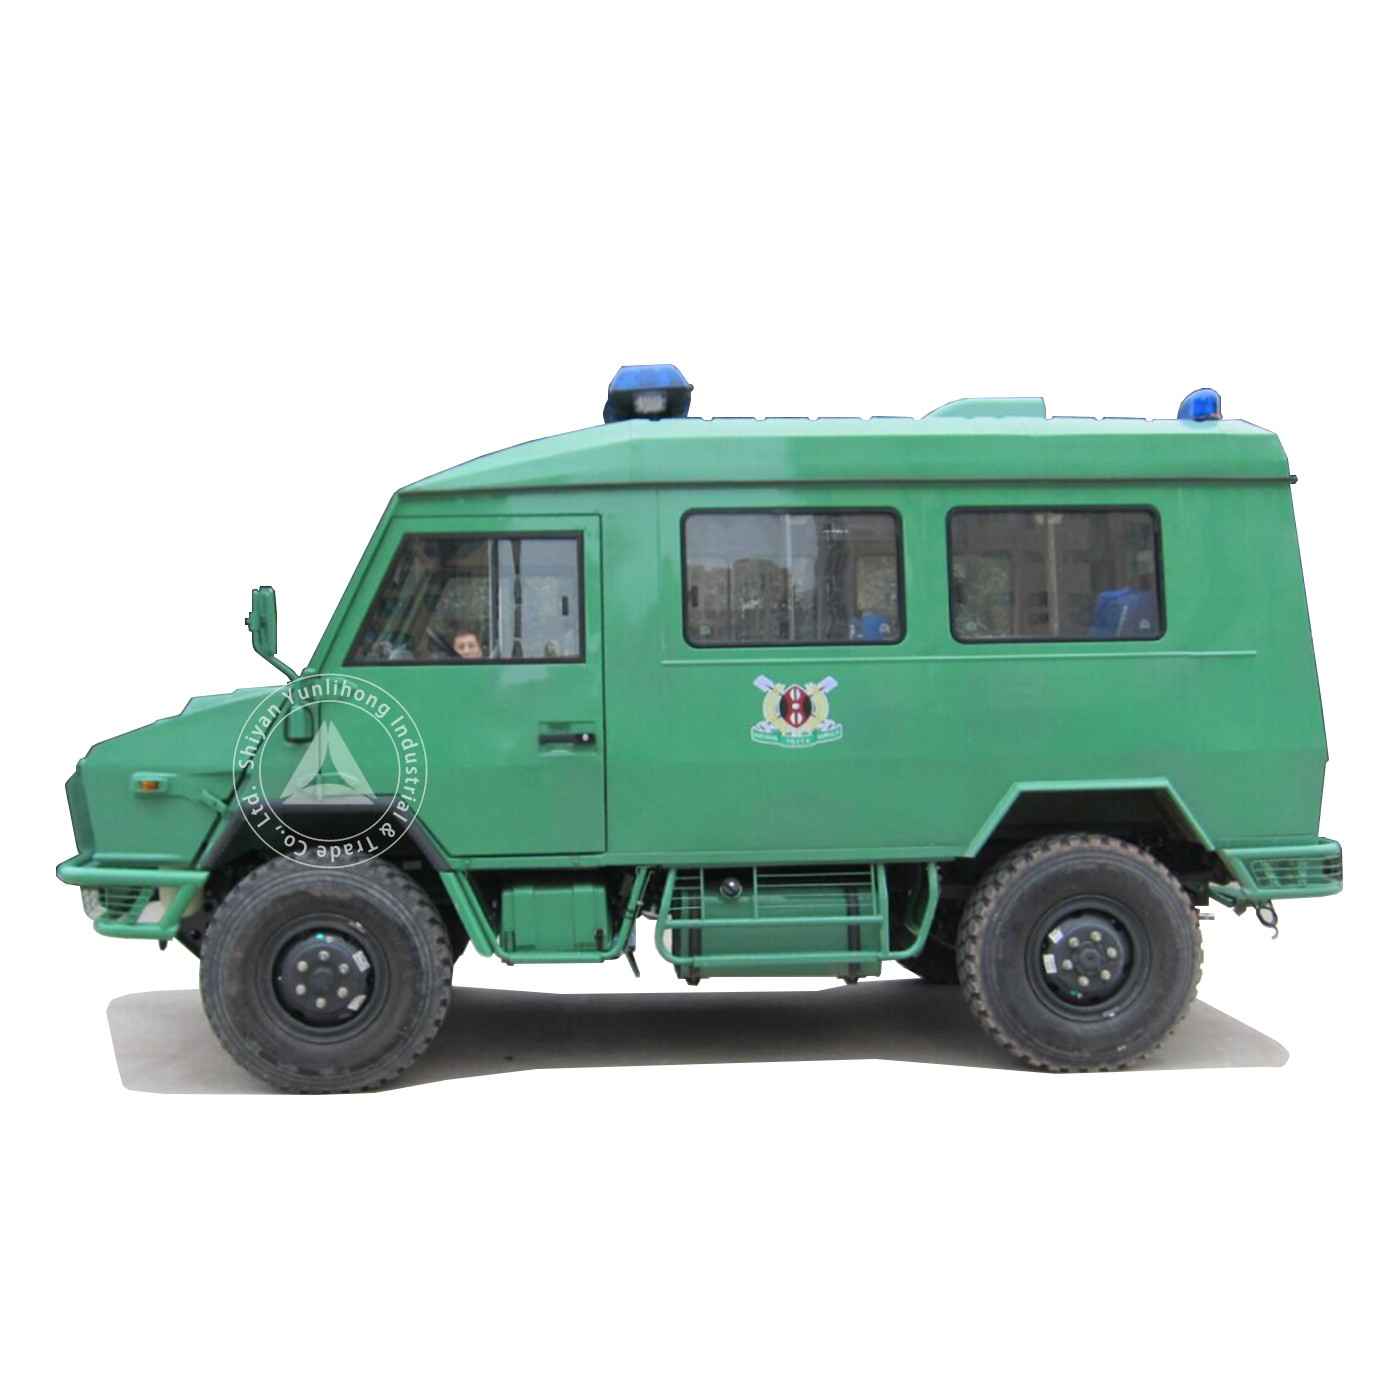 RHD Diesel 4wd The Life Care Rescue Ambulance